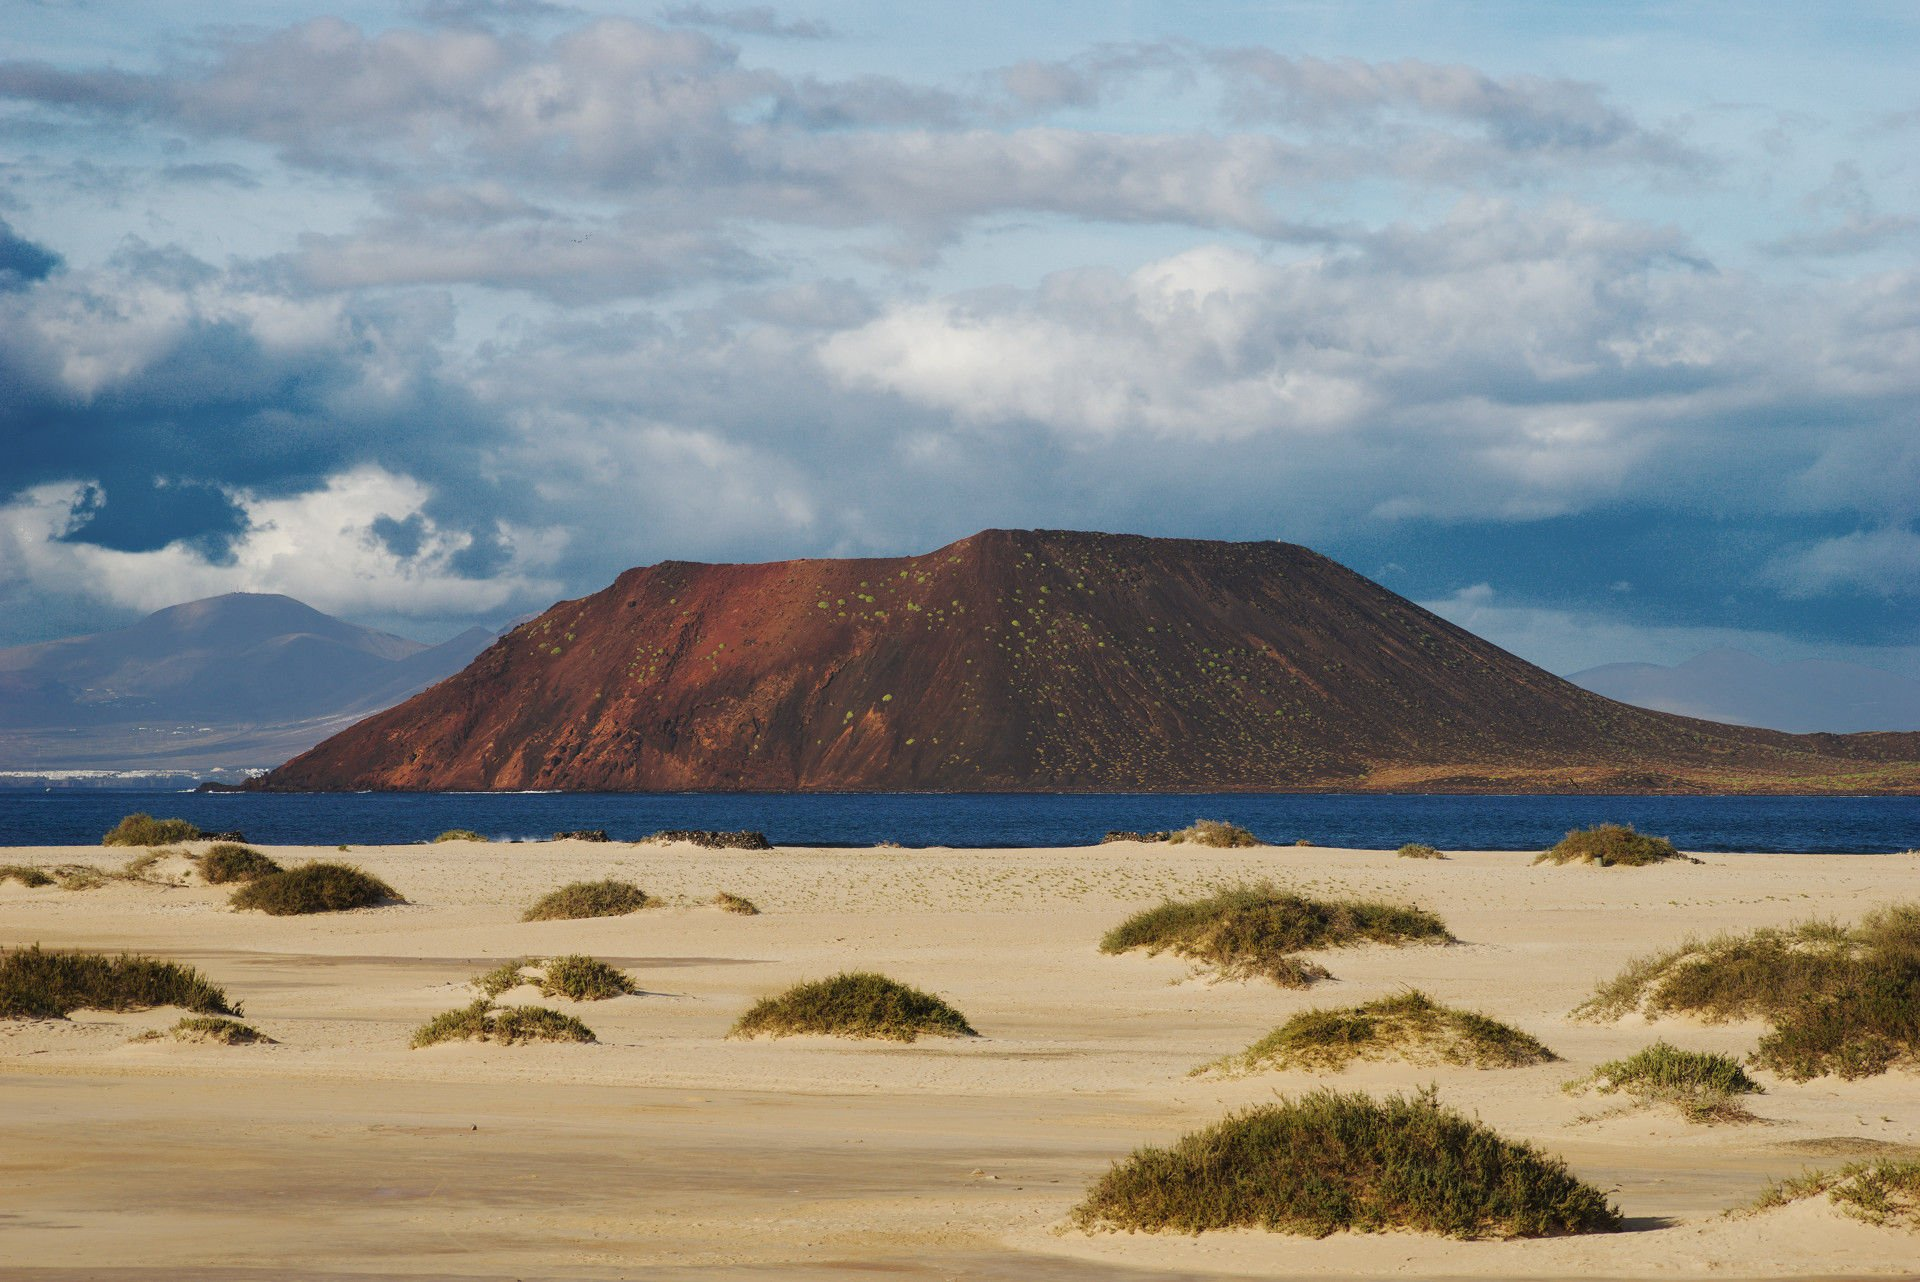 Isla de Lobos as seen from the Corralejo Dunes